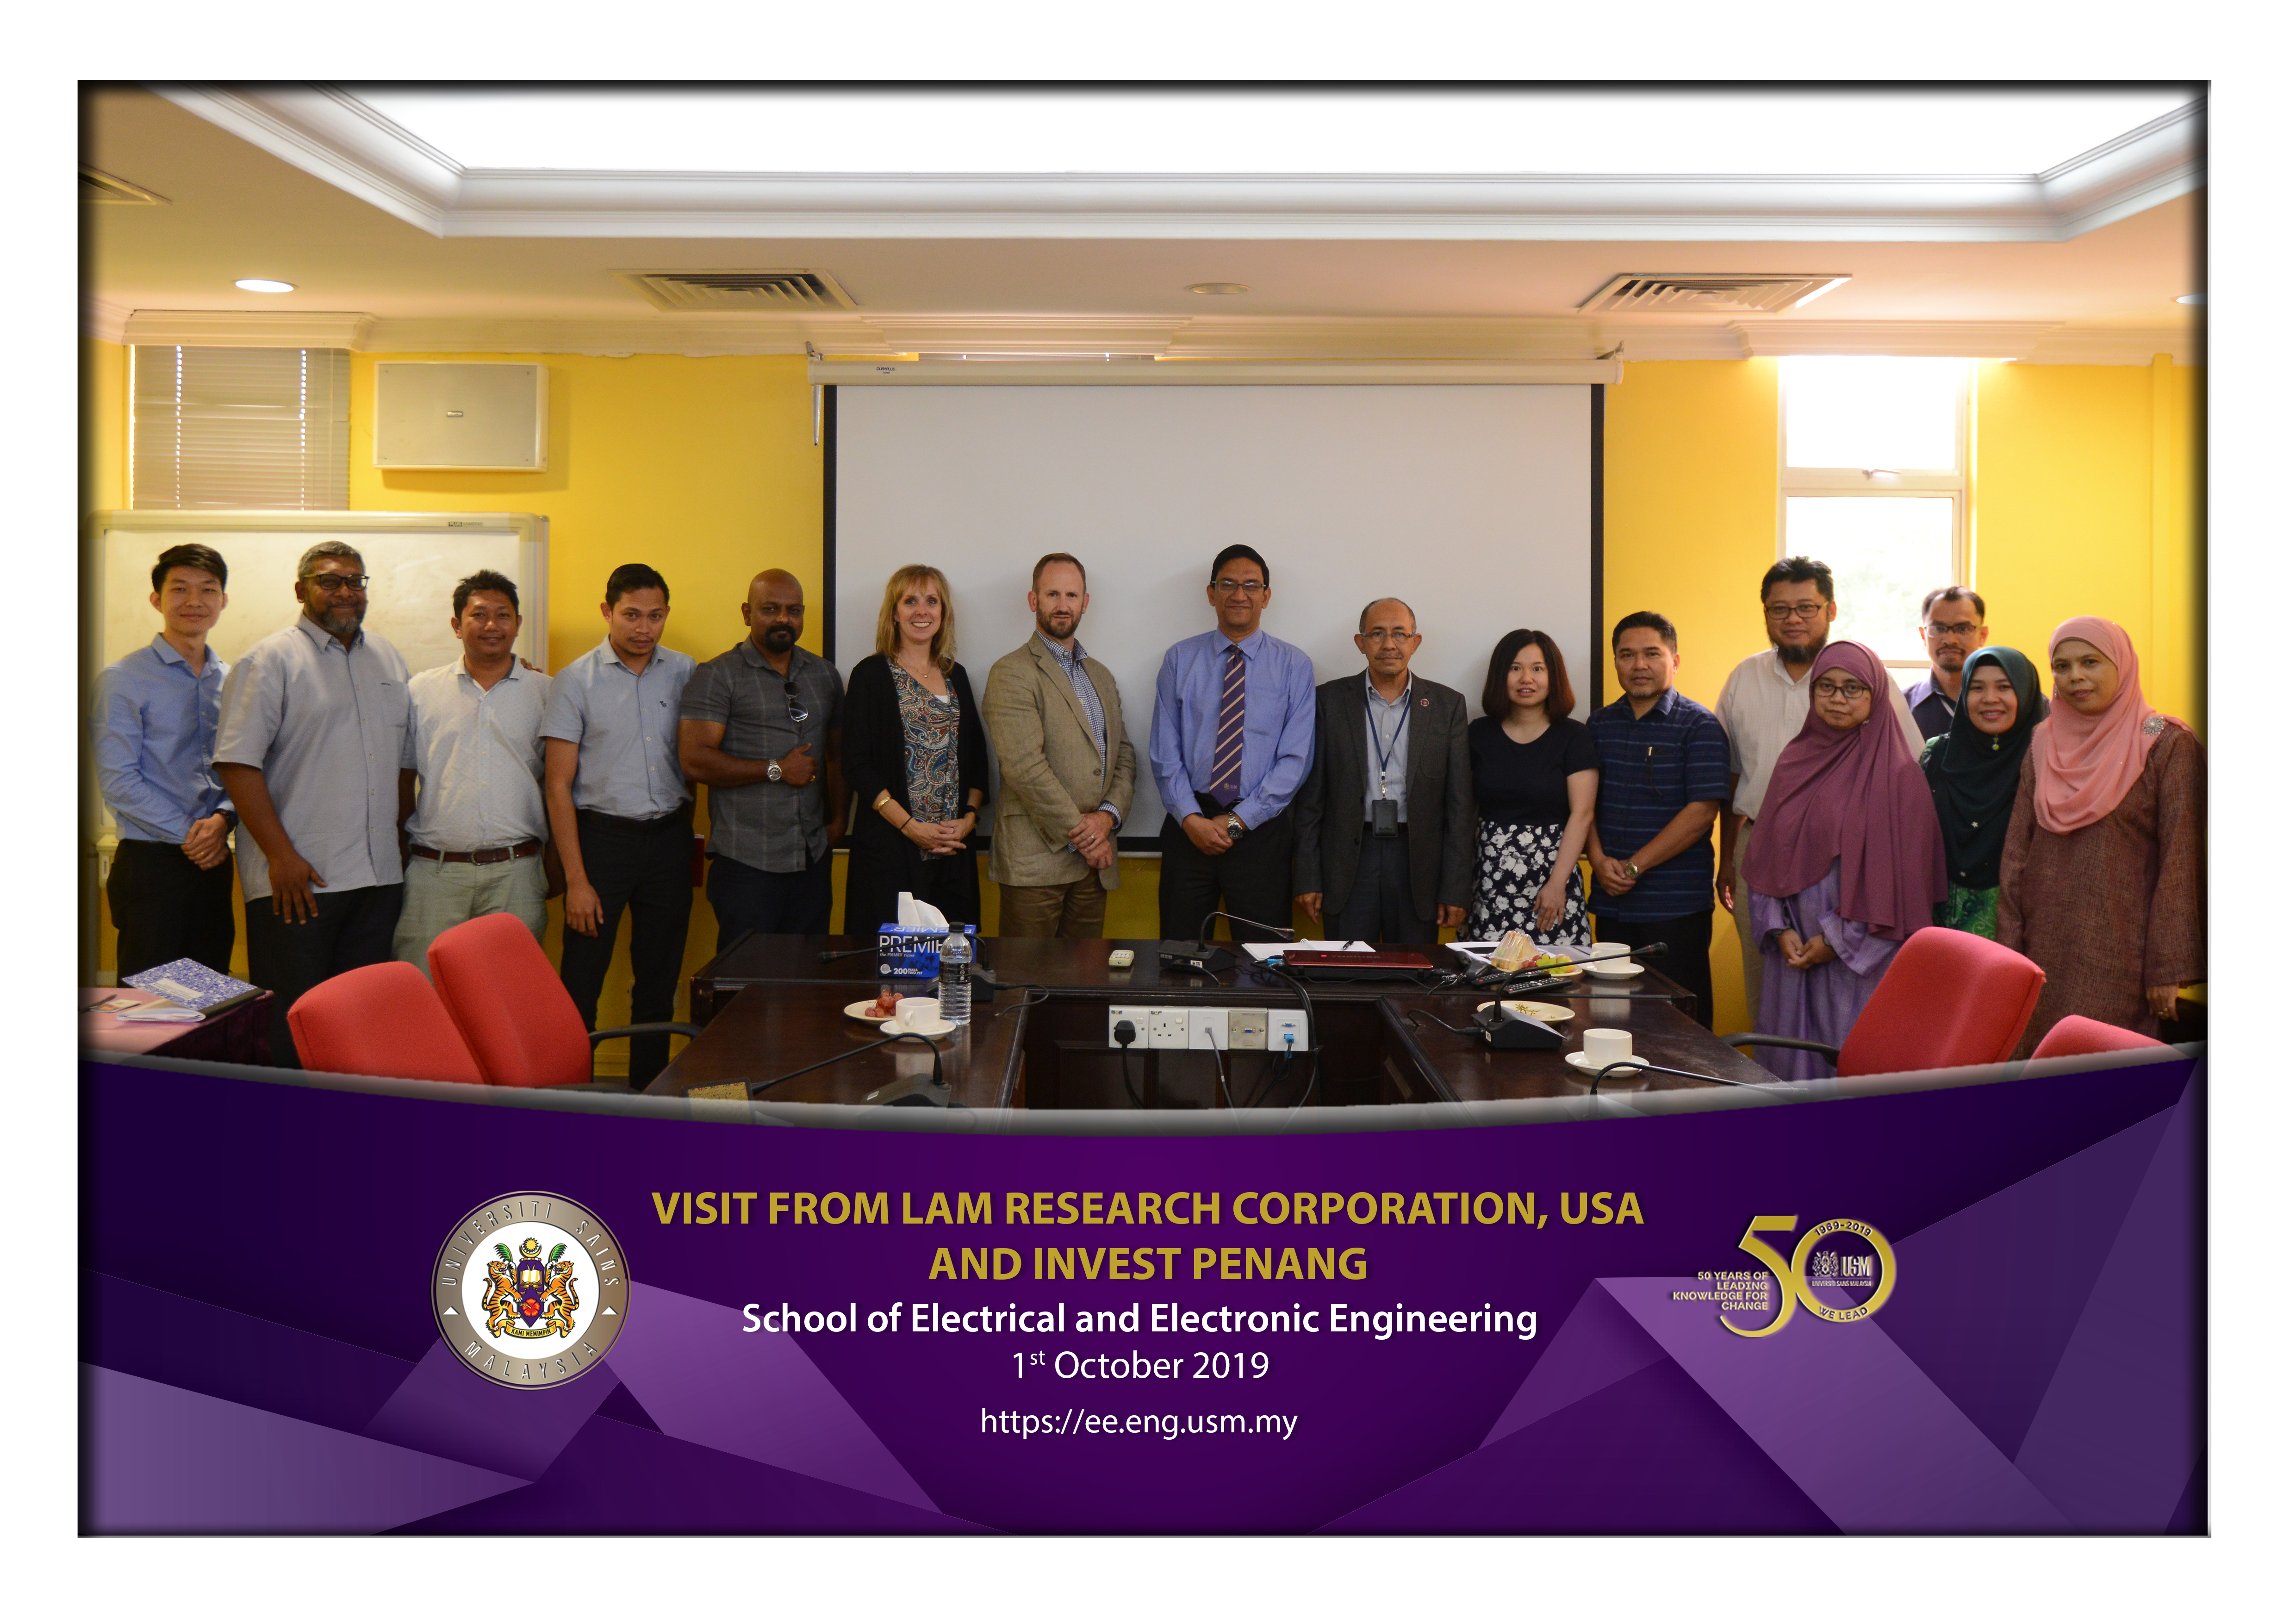 Visit from Lam Research Corporation USA and Invest Penang